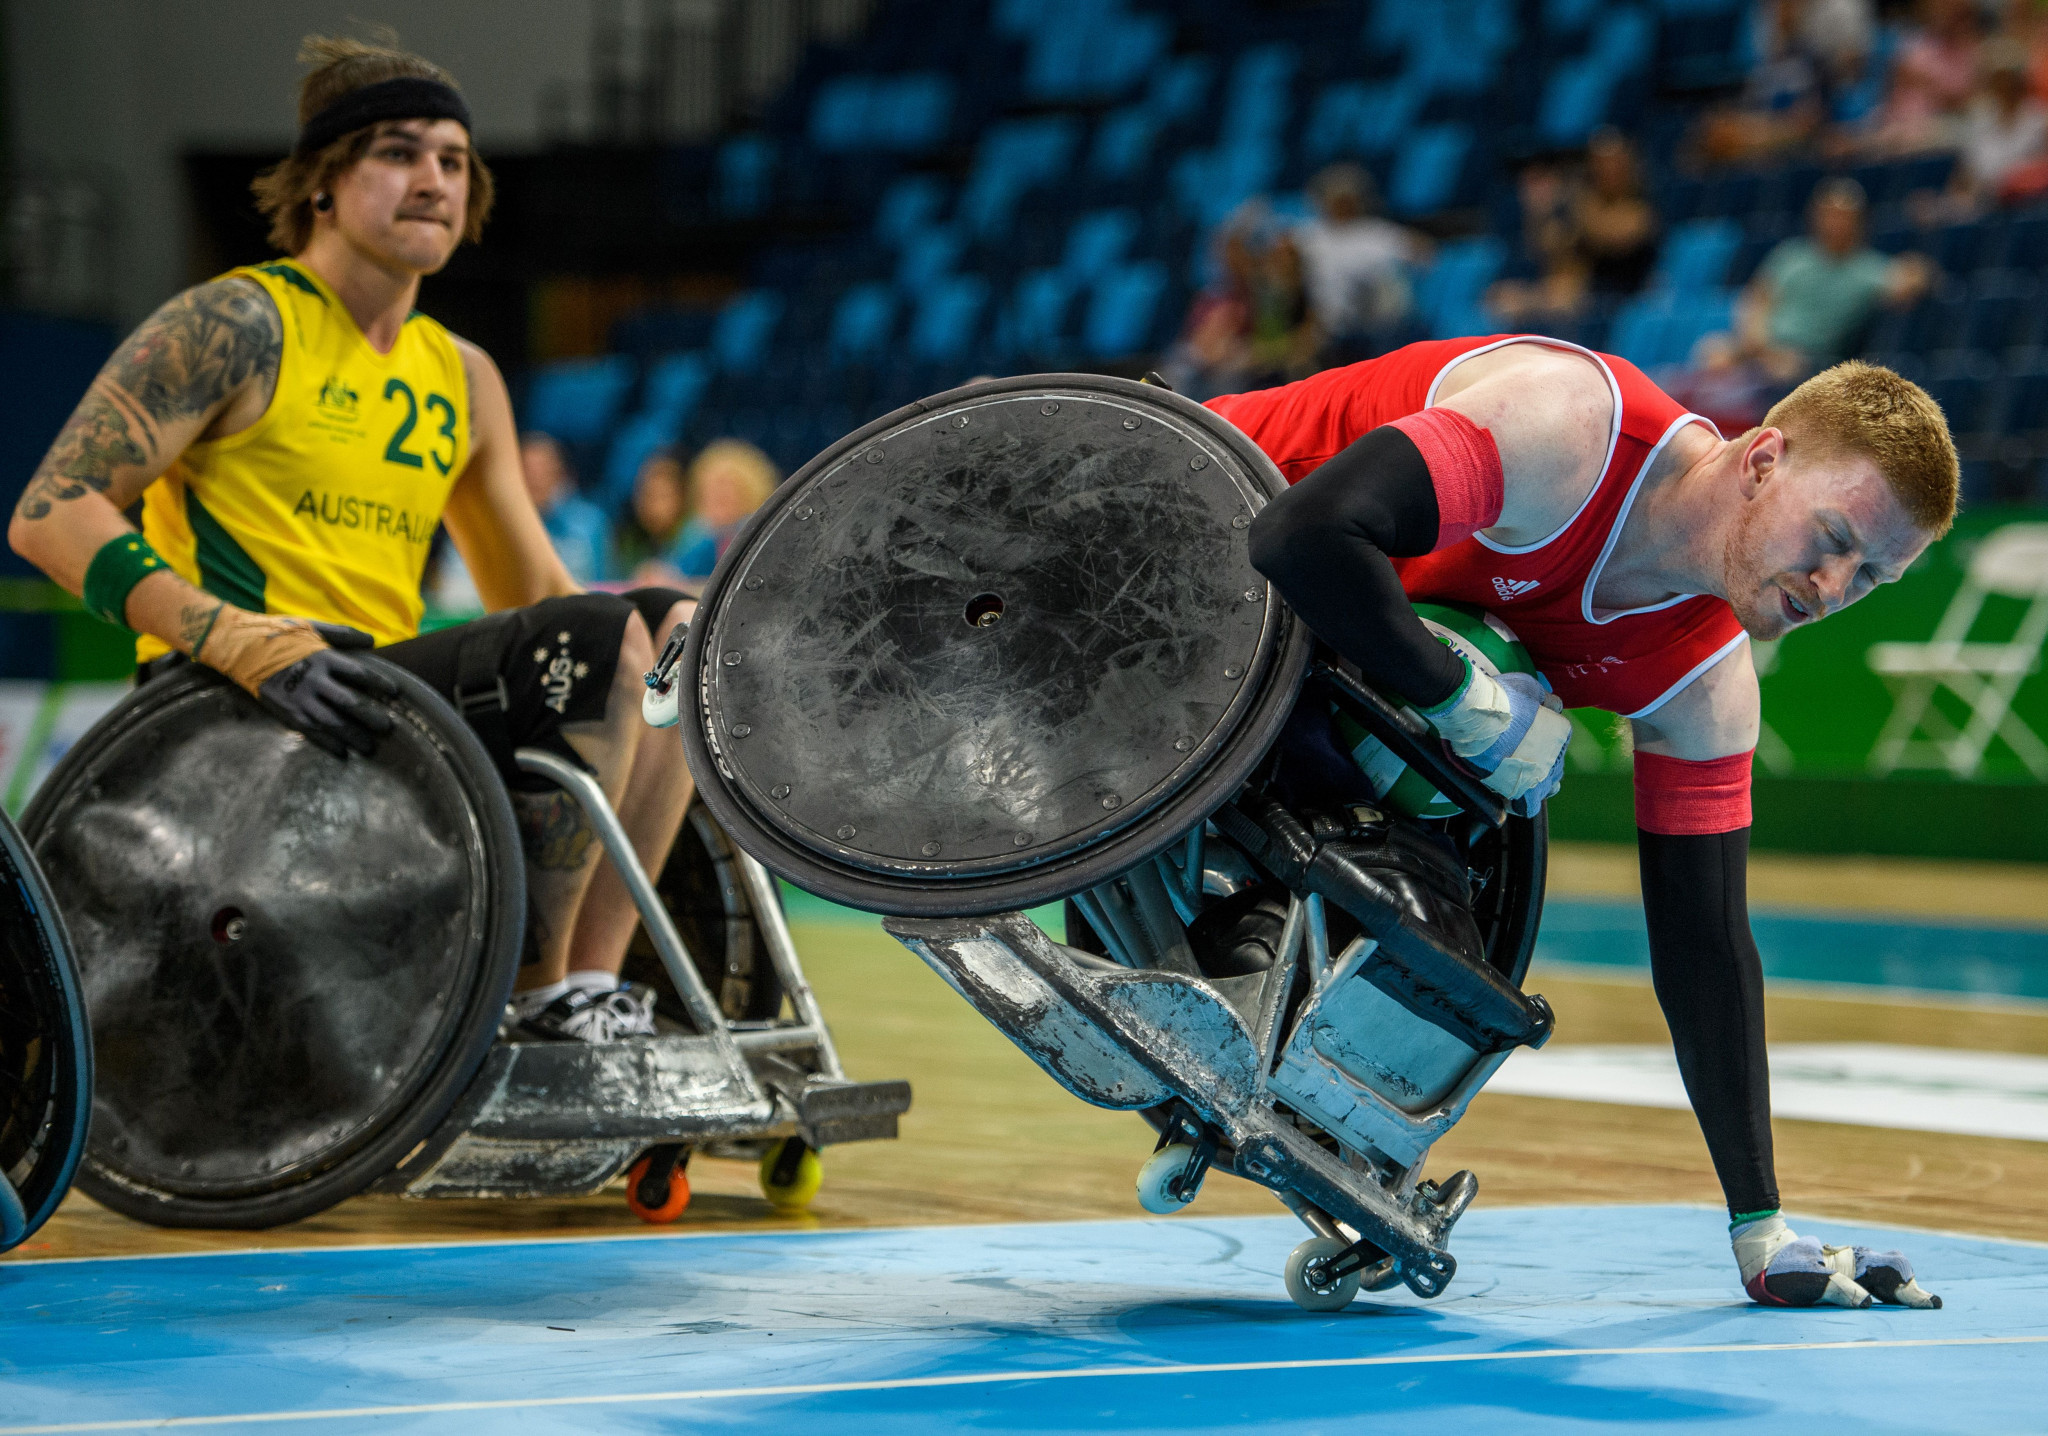 Wheelchair rugby has been working with WADA to ensure international standards ©Getty Images